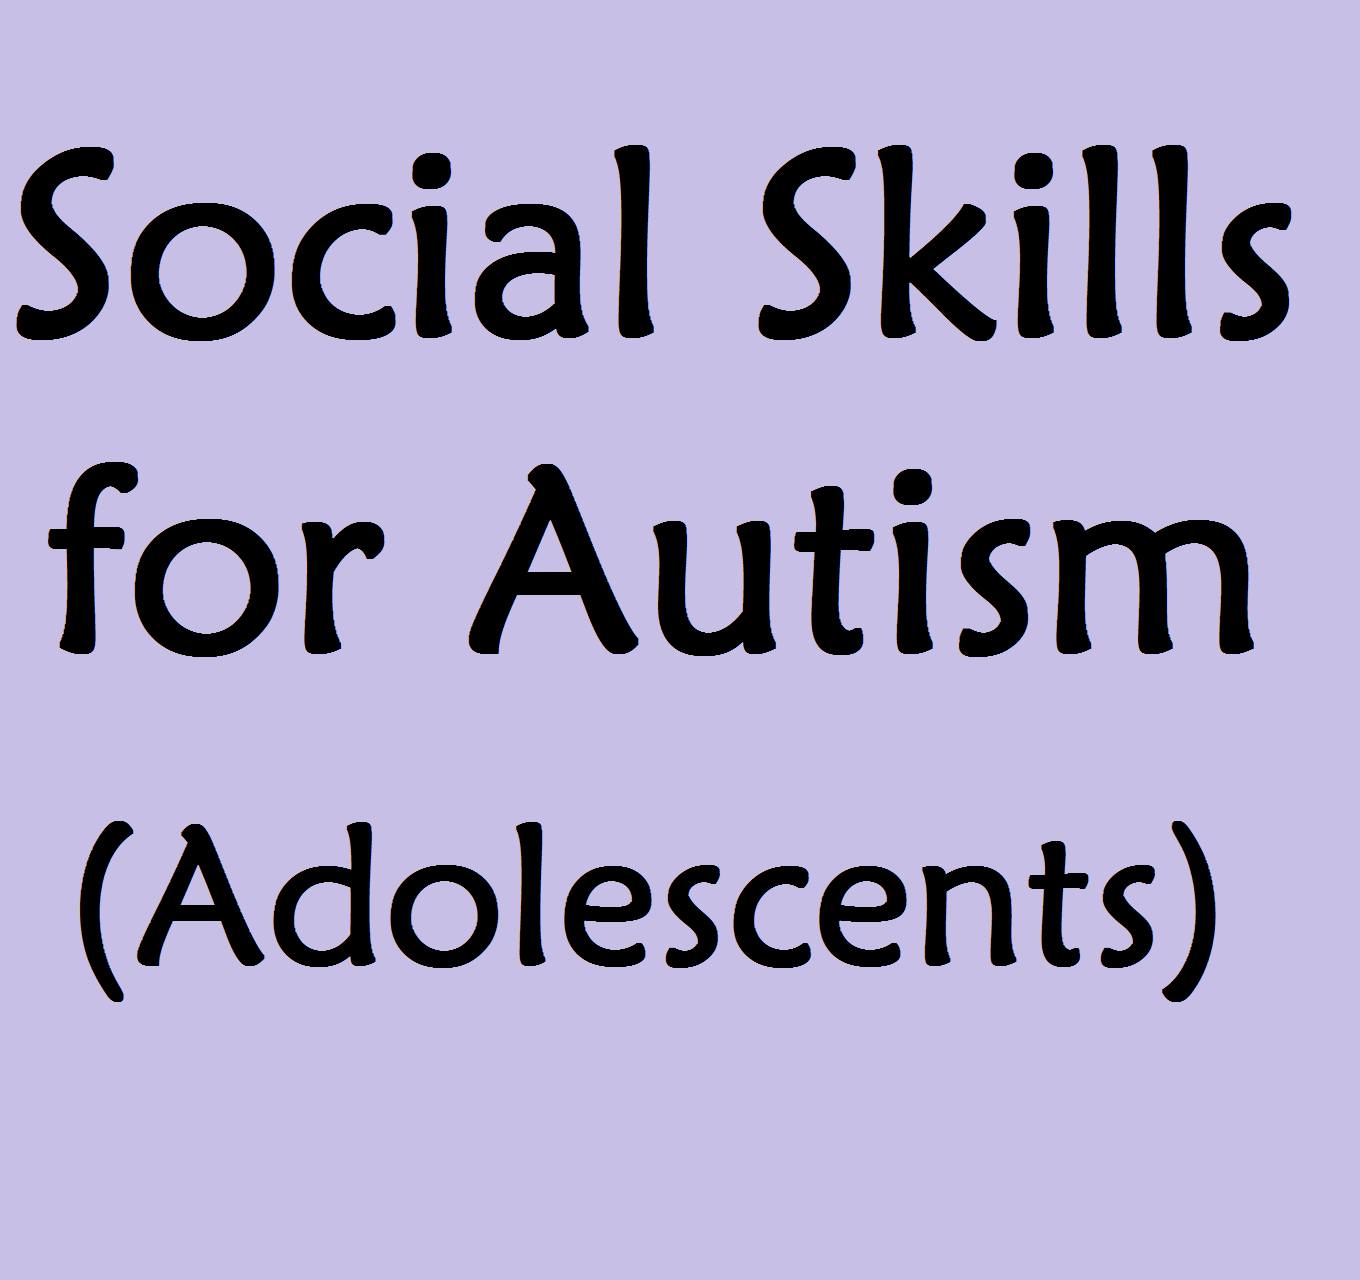 social skills for autism (adolescents)